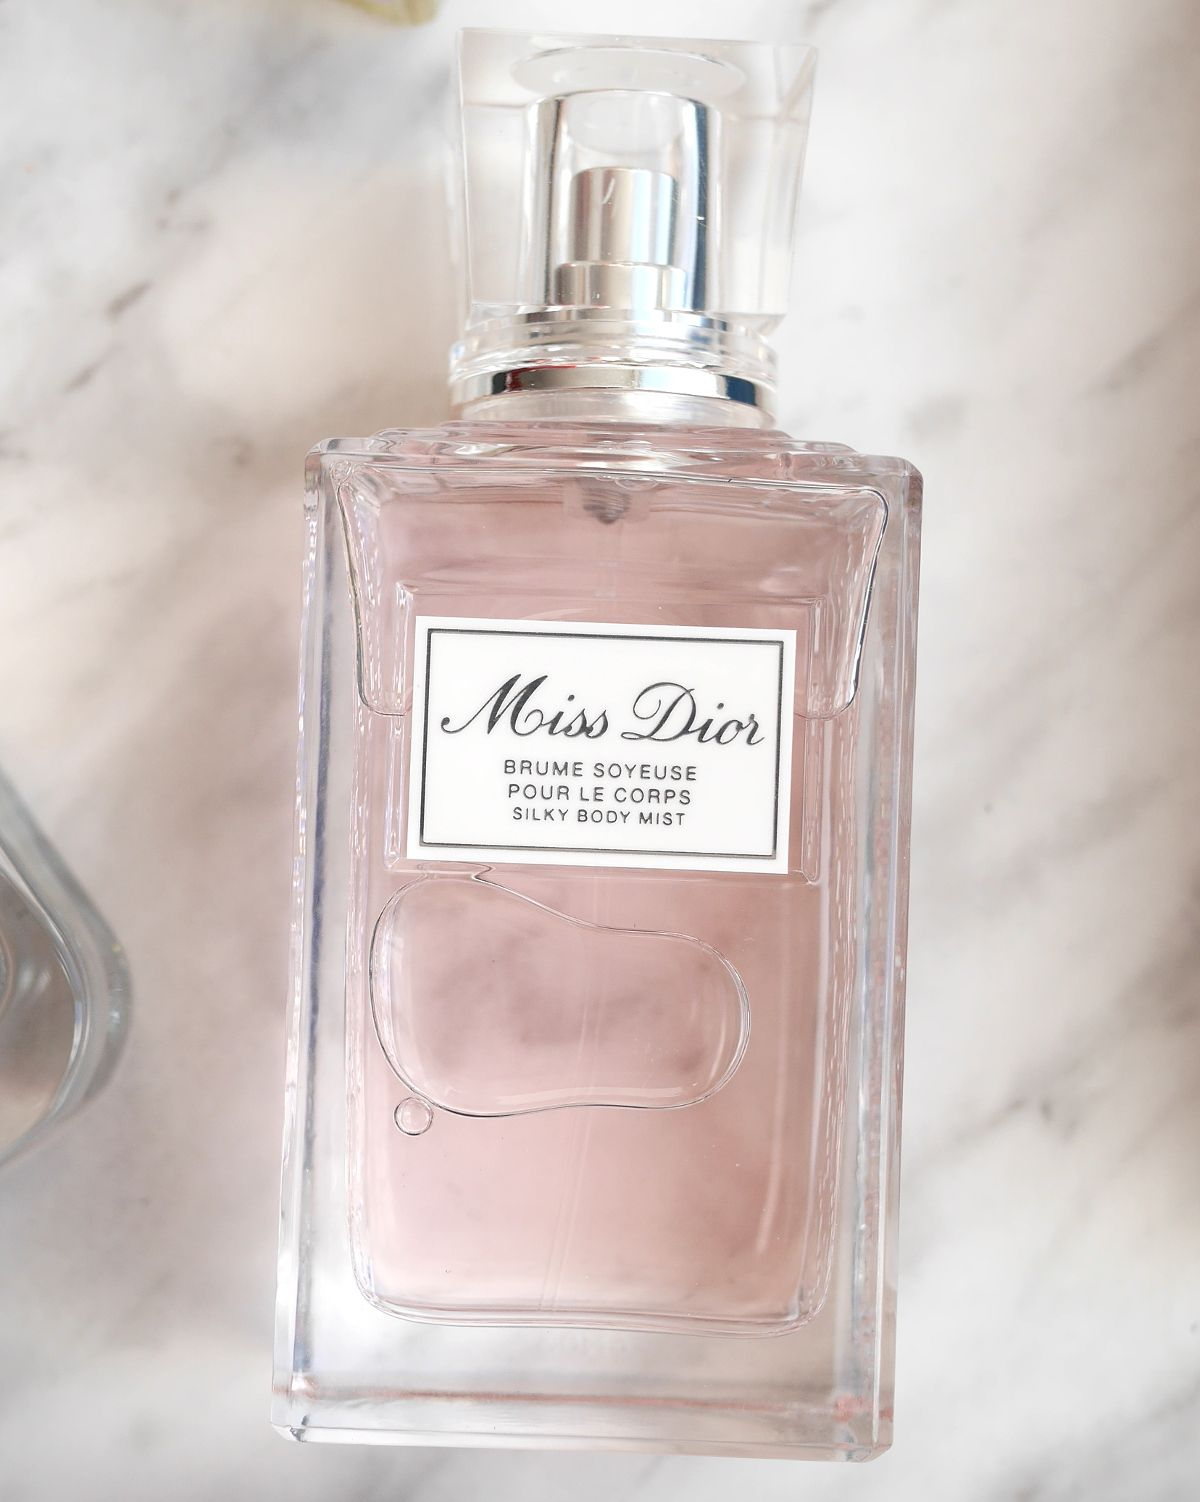 505d84d6 Miss Dior Silky Body Mist | Beauty Products in 2019 | Miss dior ...